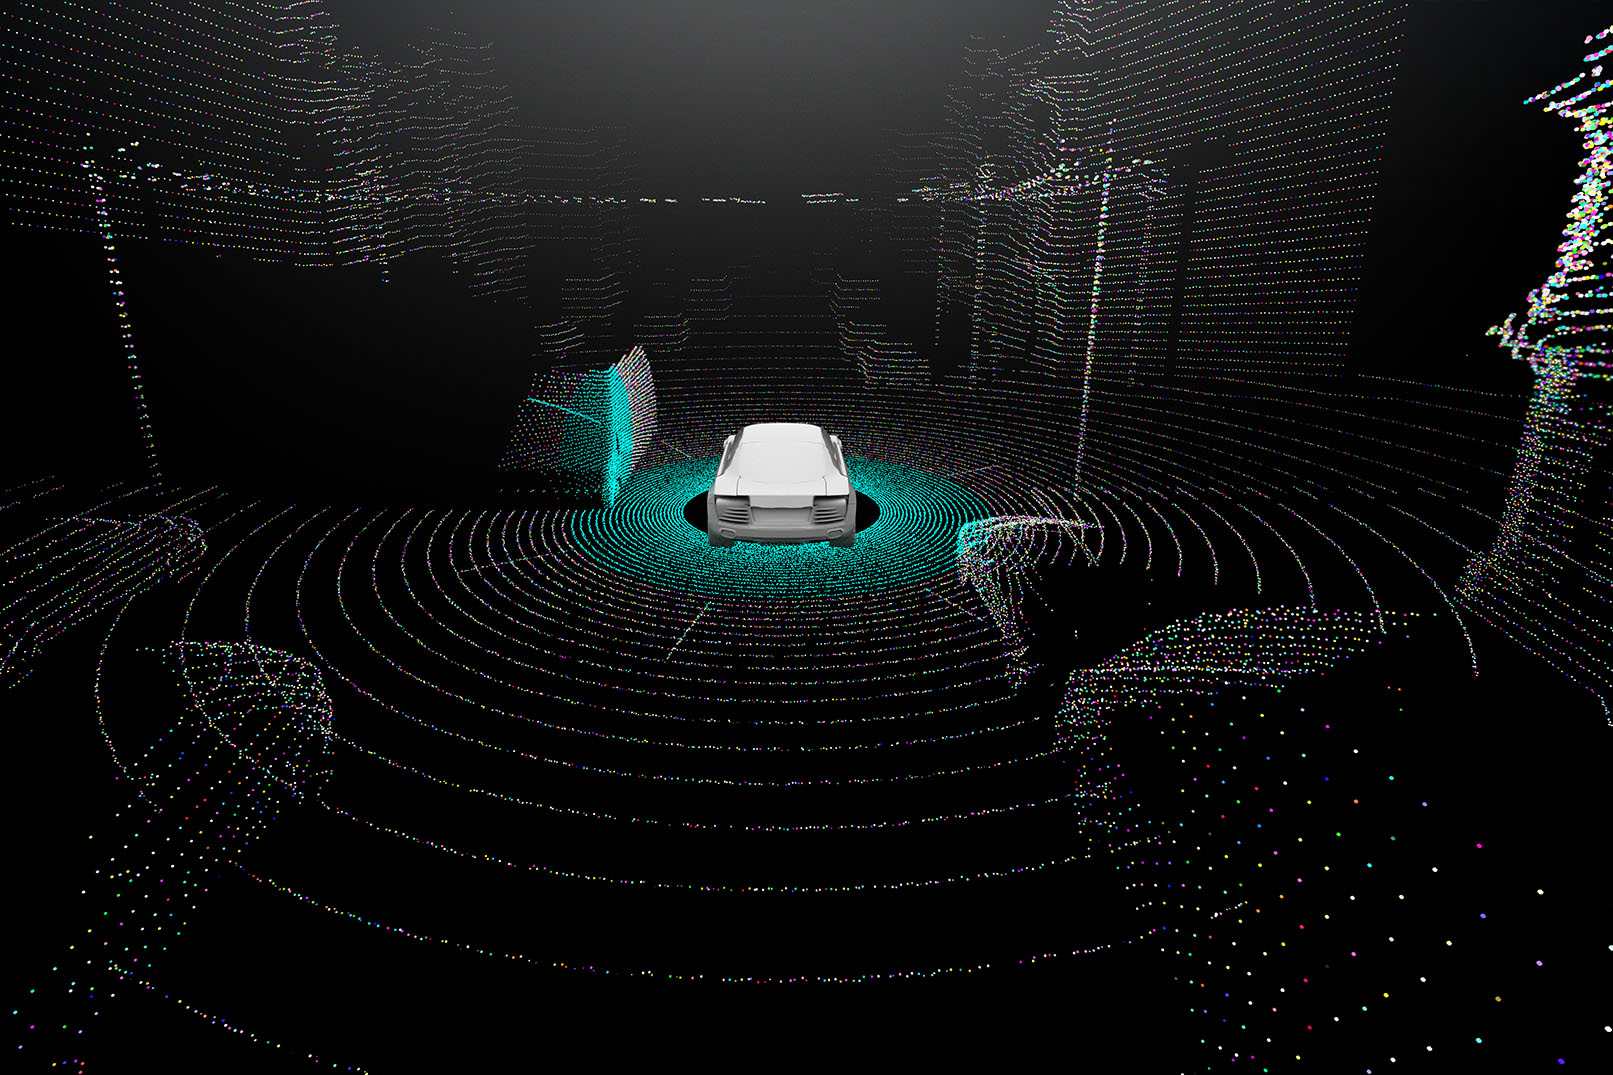 Example image of what lidar can detect around a car